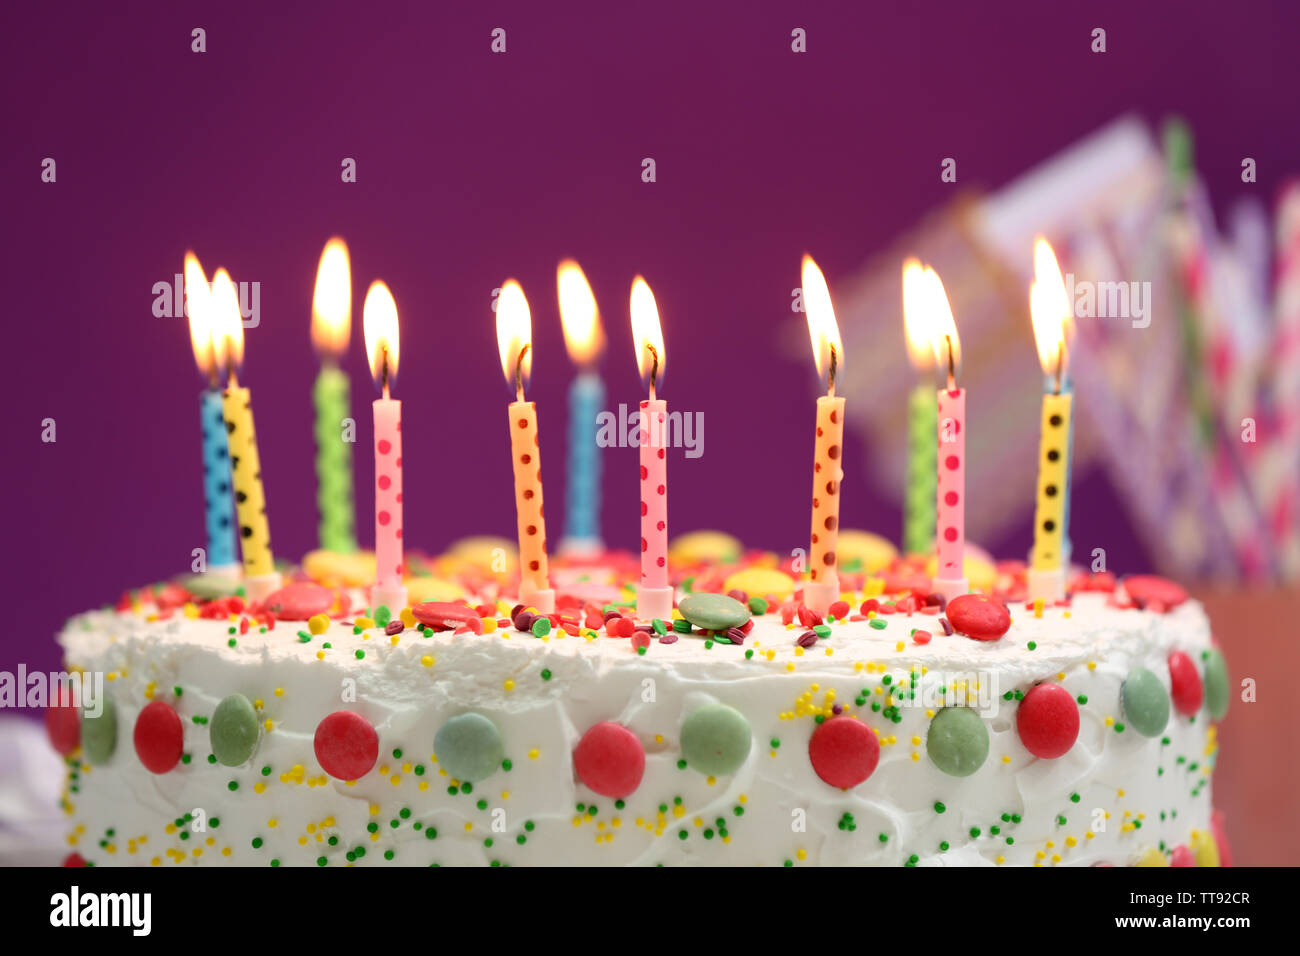 Marvelous Birthday Cake With Candles On Purple Background Stock Photo Funny Birthday Cards Online Chimdamsfinfo